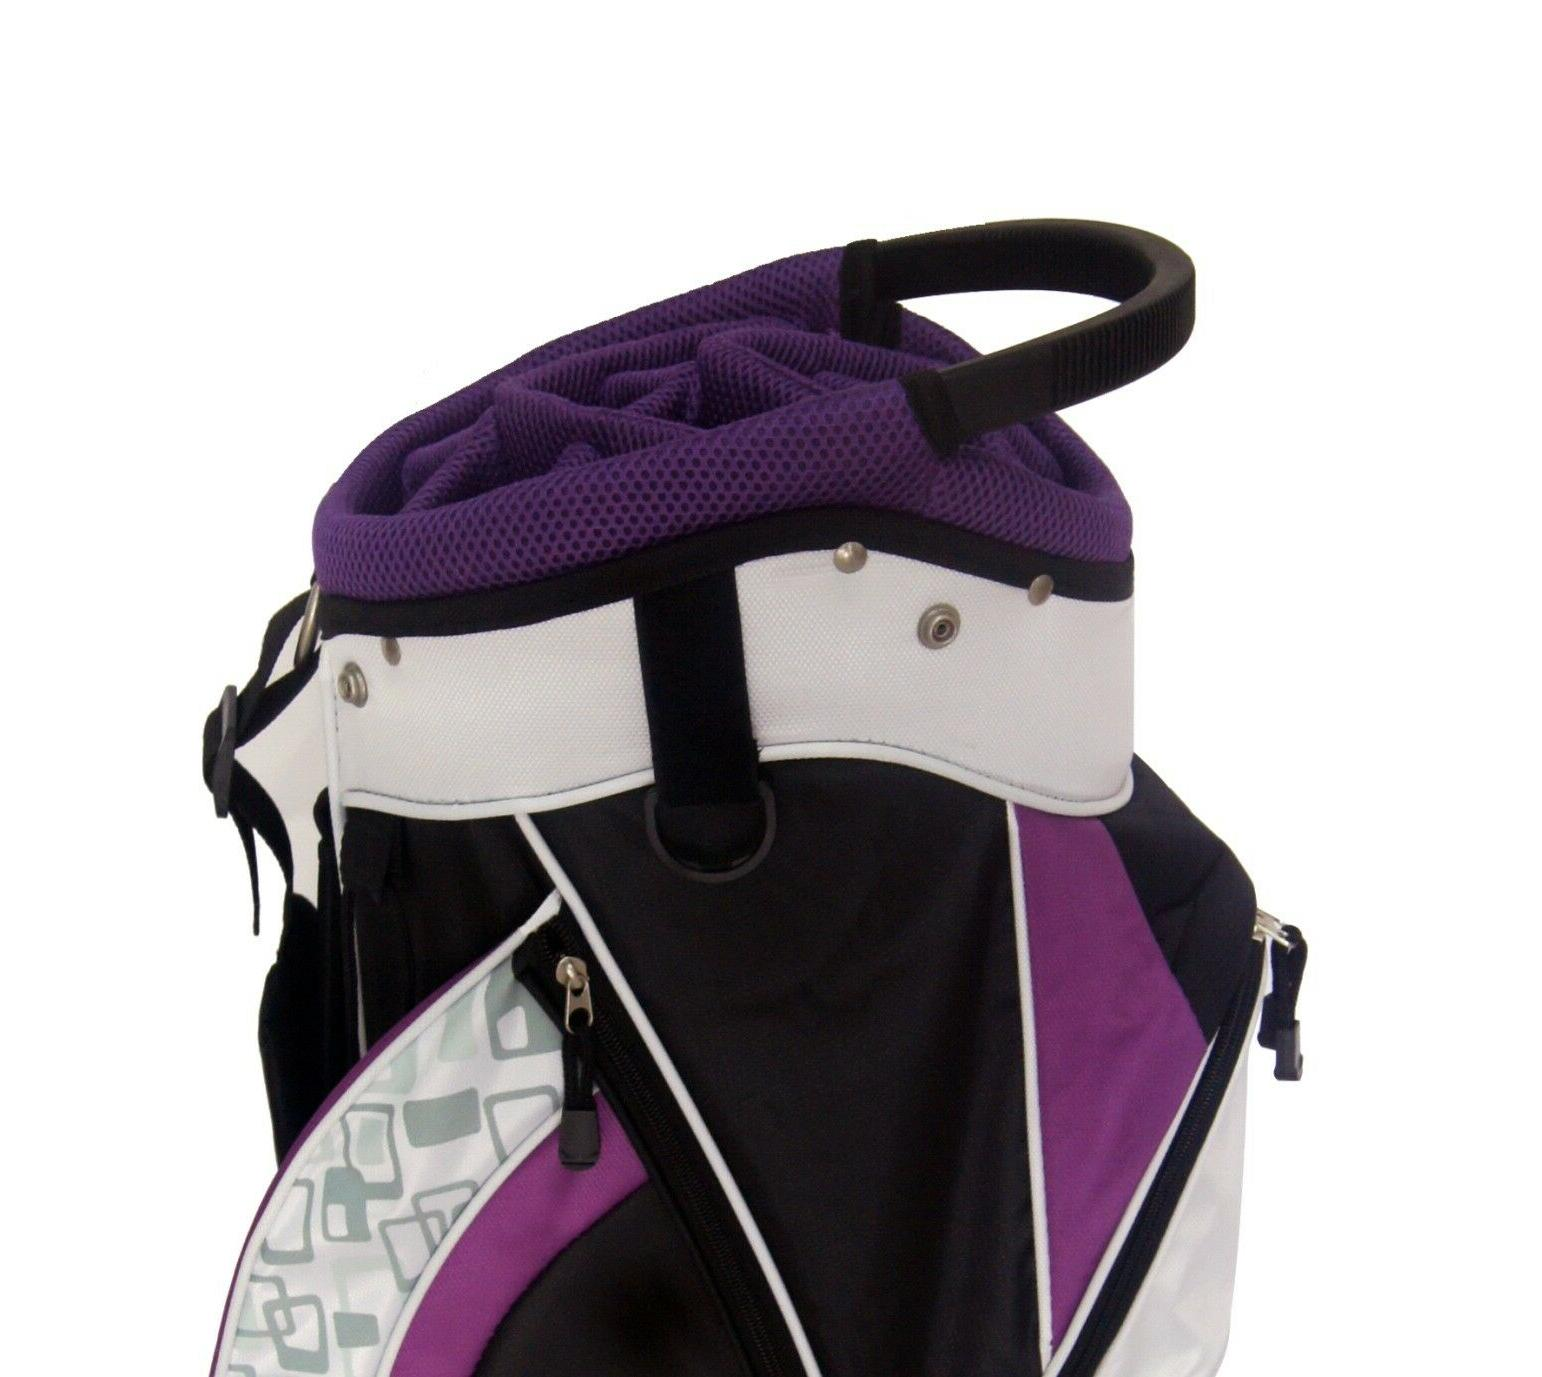 Founders Womens Golf Set with Bag, Head Covers